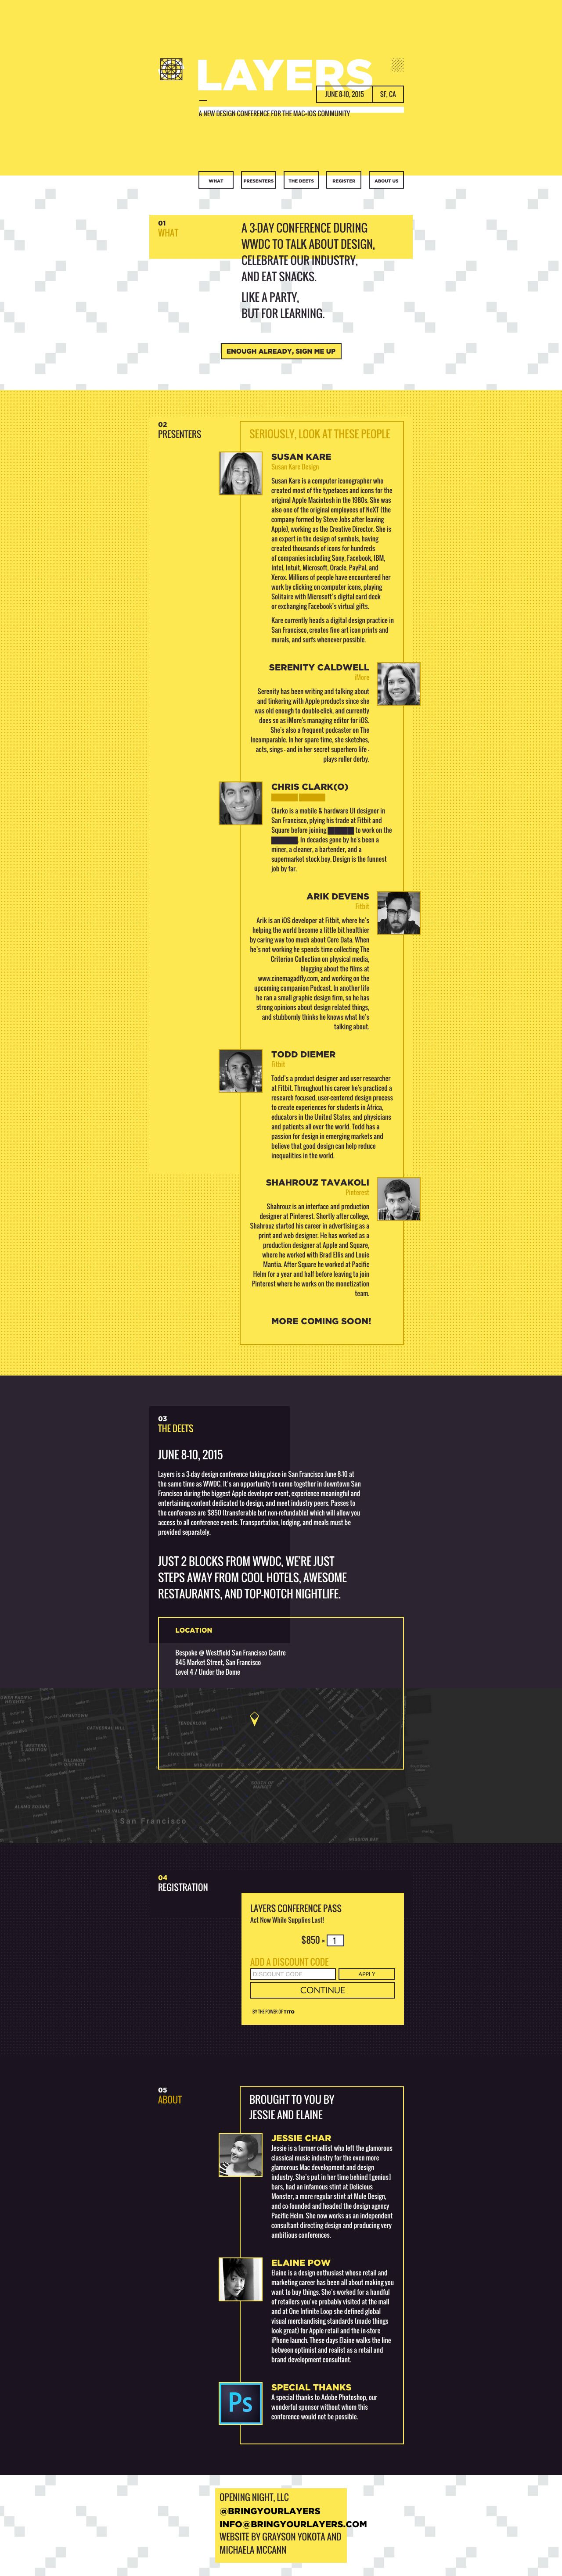 Layers Interactive Web Design Conference Design One Page Website